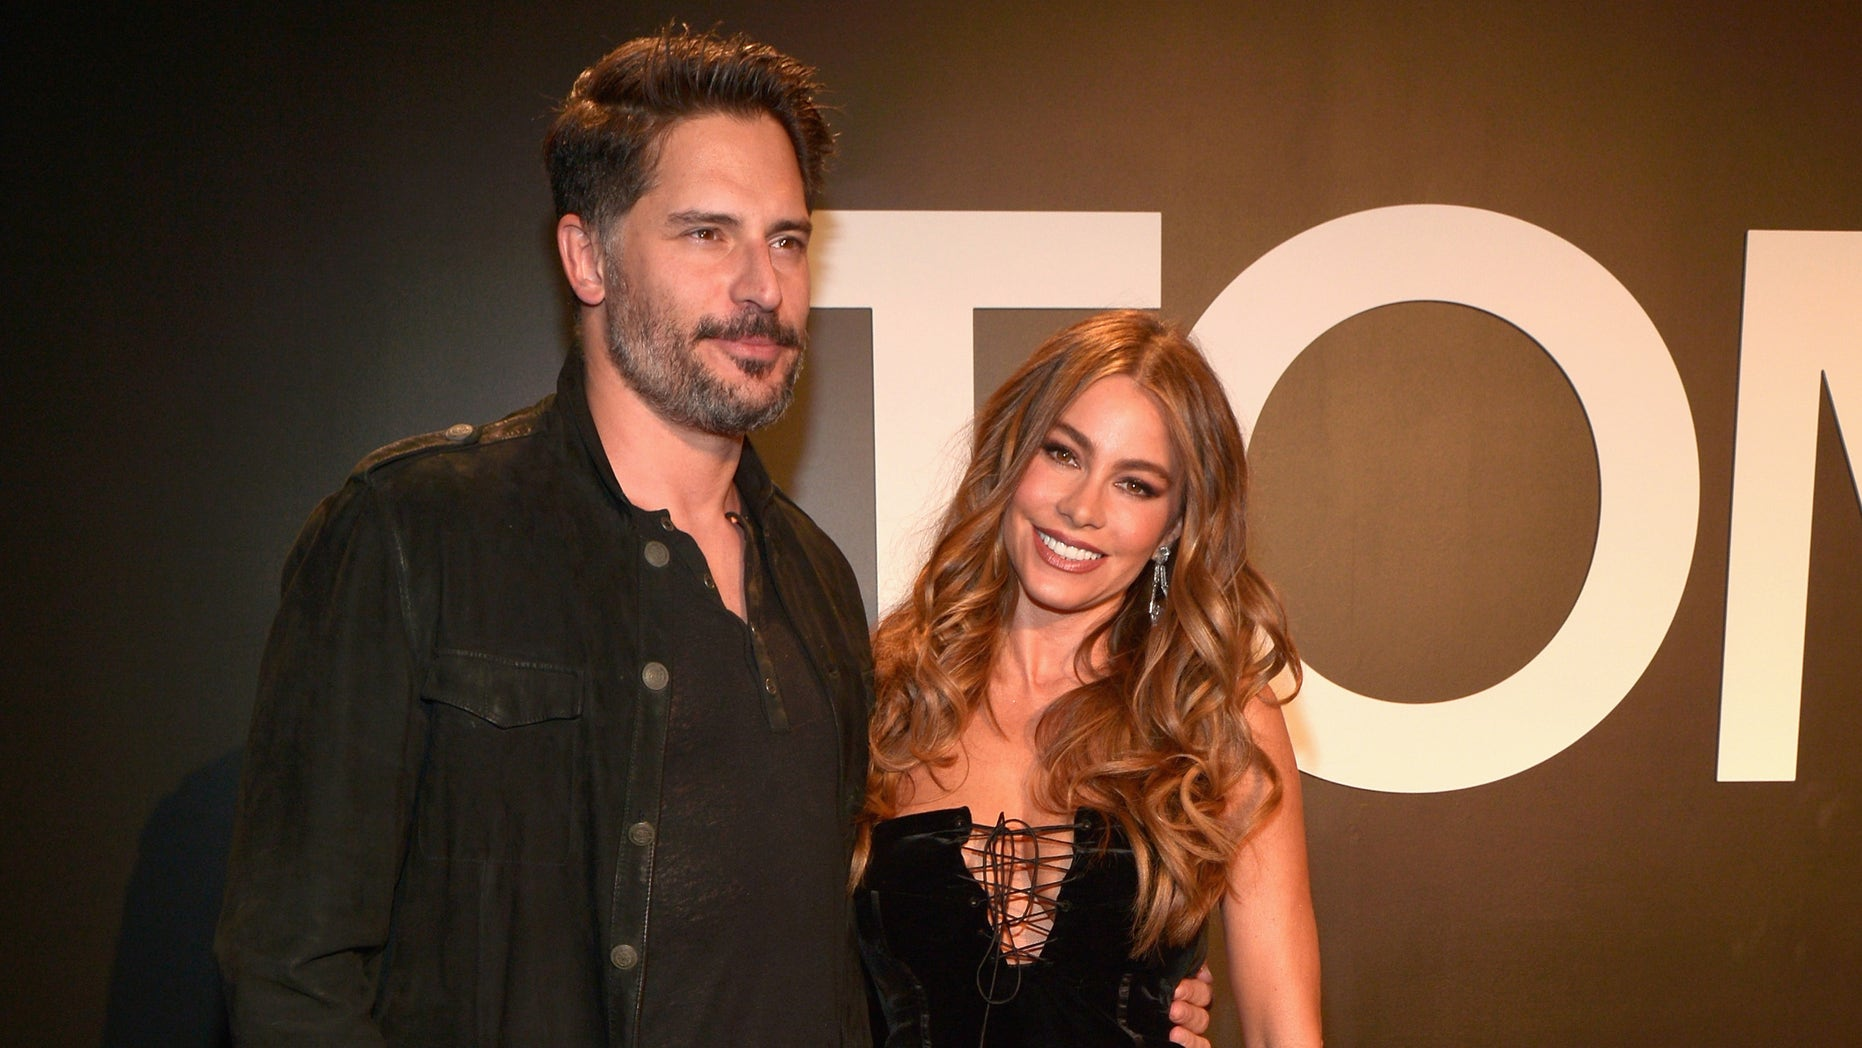 LOS ANGELES, CA - FEBRUARY 20:  Actress Sofia Vergara (R), wearing TOM FORD, and actor Joe Manganiello attend the TOM FORD Autumn/Winter 2015 Womenswear Collection Presentation at Milk Studios in Los Angeles on February 20, 2015.  (Photo by Charley Gallay/Getty Images for Tom Ford)